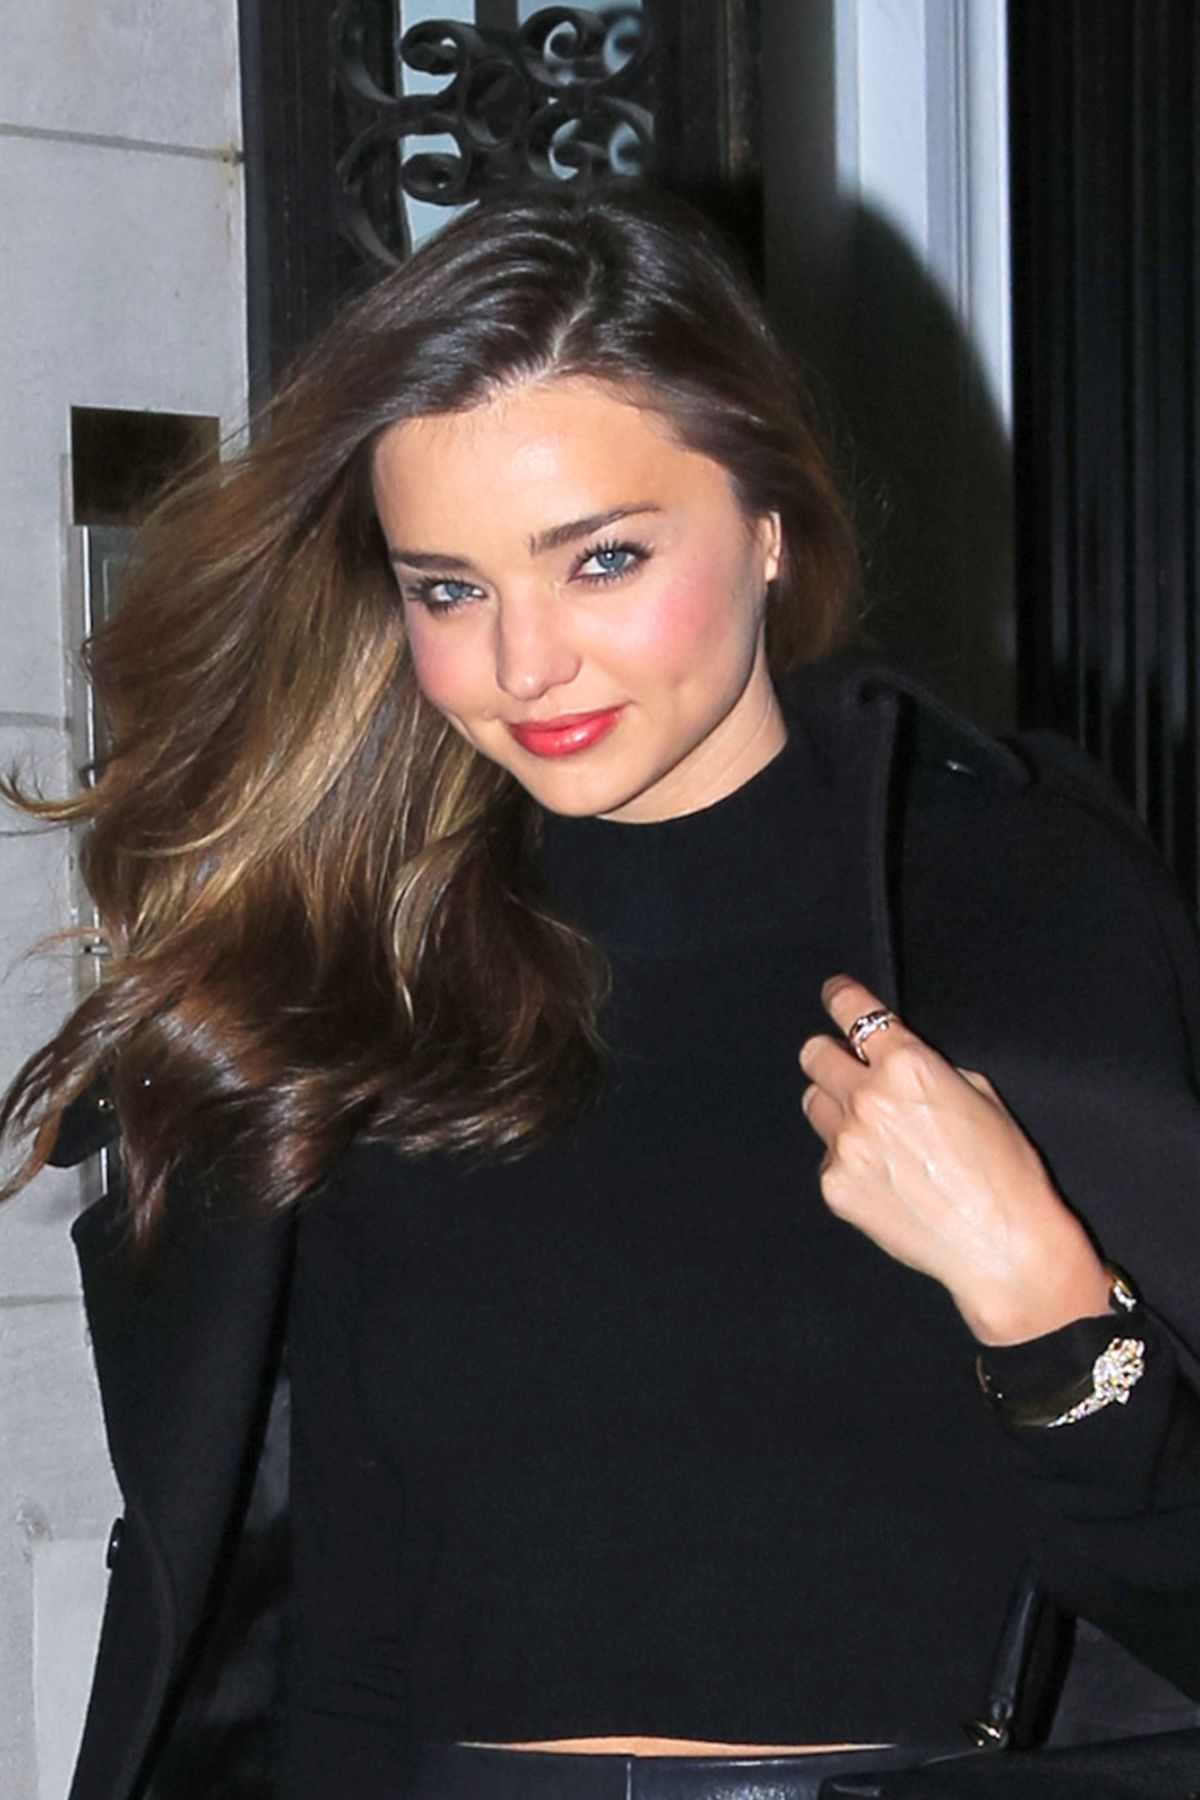 Miranda Kerr Seen Heading Out In New York City